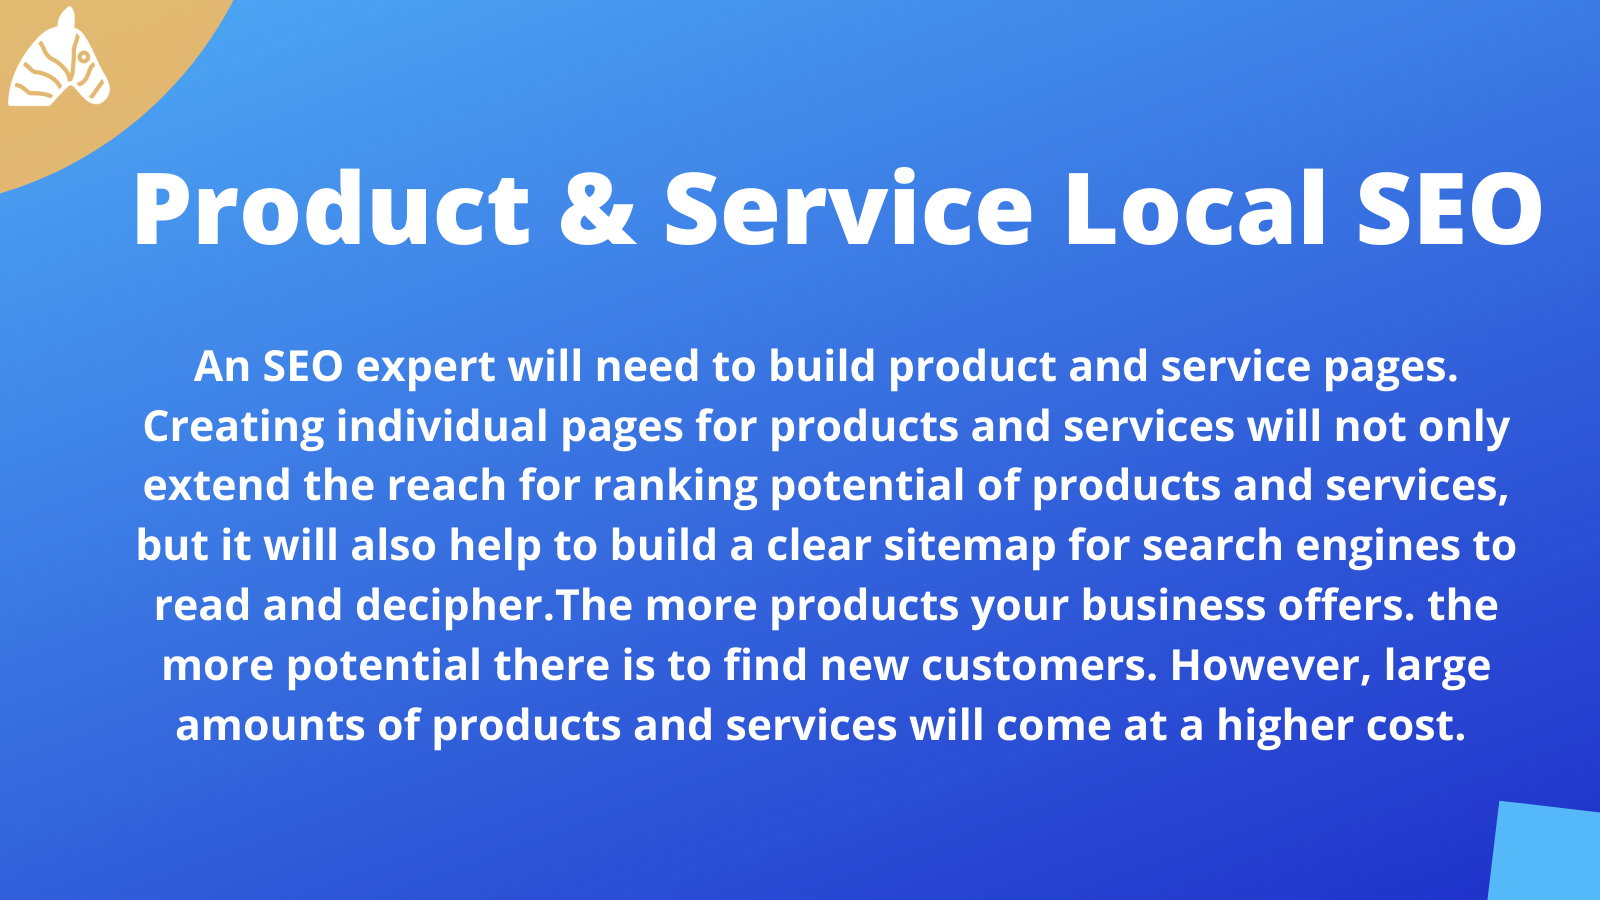 information on product and service pages and how they influence local SEO costs